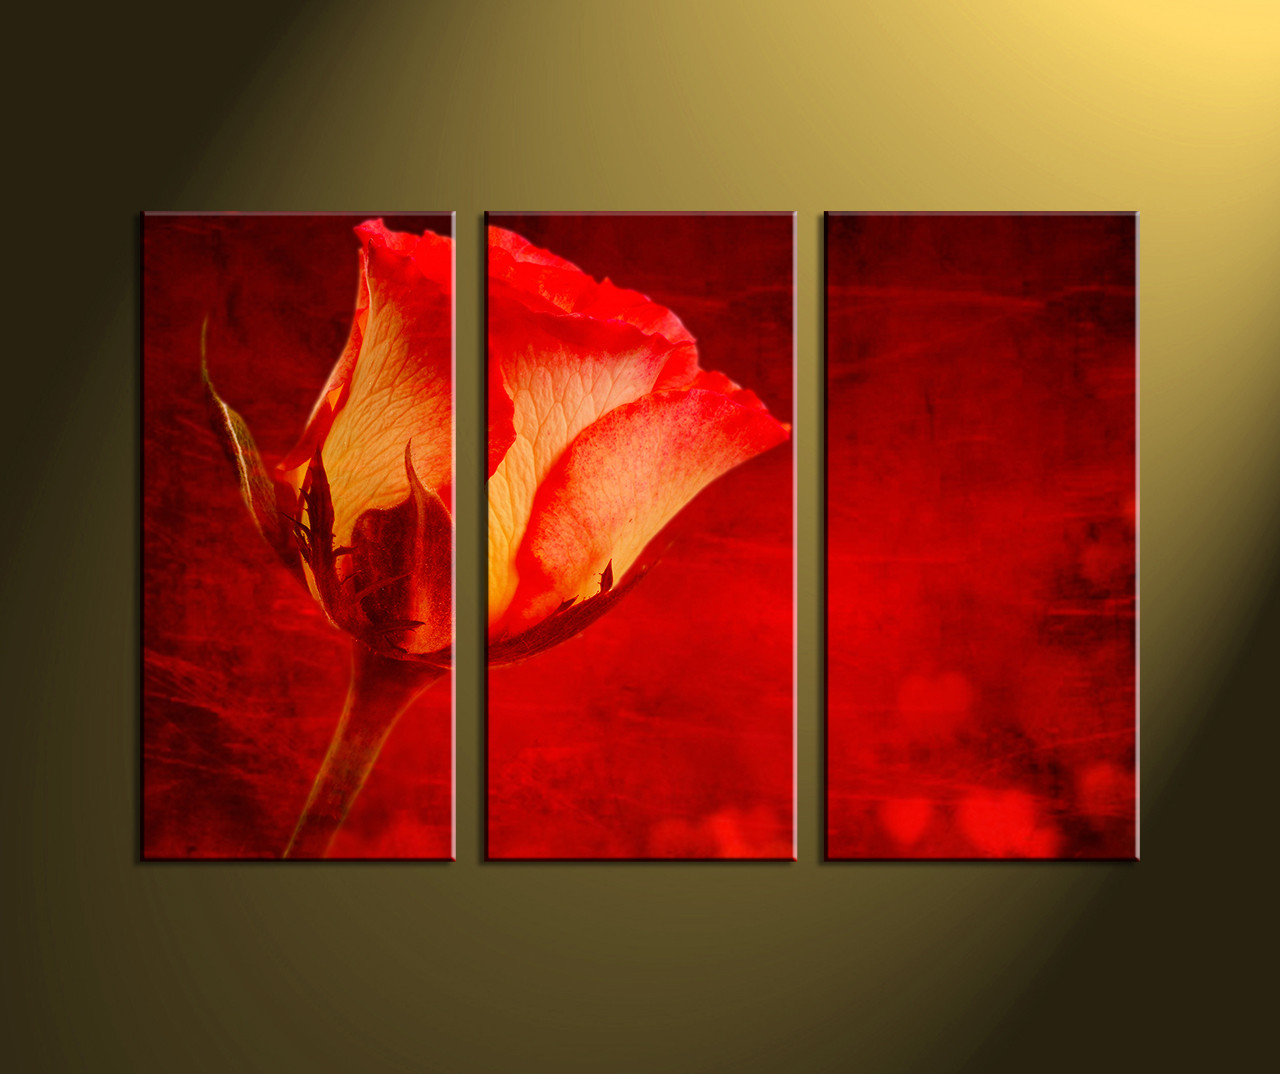 Home Decor, Scenery Art, 3 Piece Wall Art, Red Artwork, Floral Huge